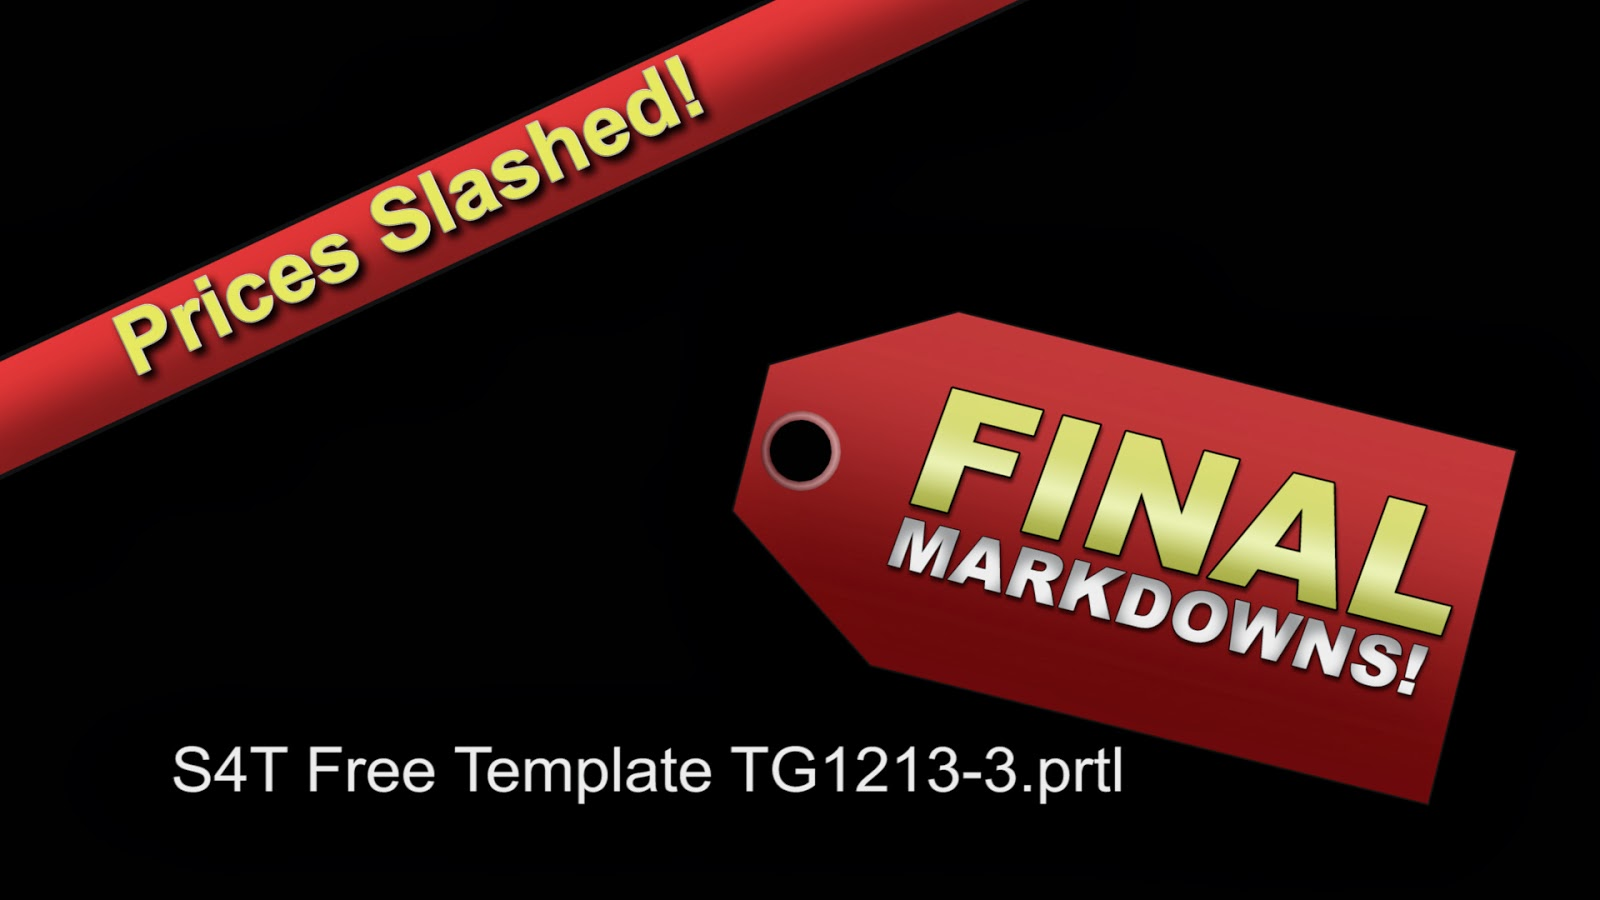 Style4type free s4t premiere pro title template final markdowns for Premiere pro title templates free